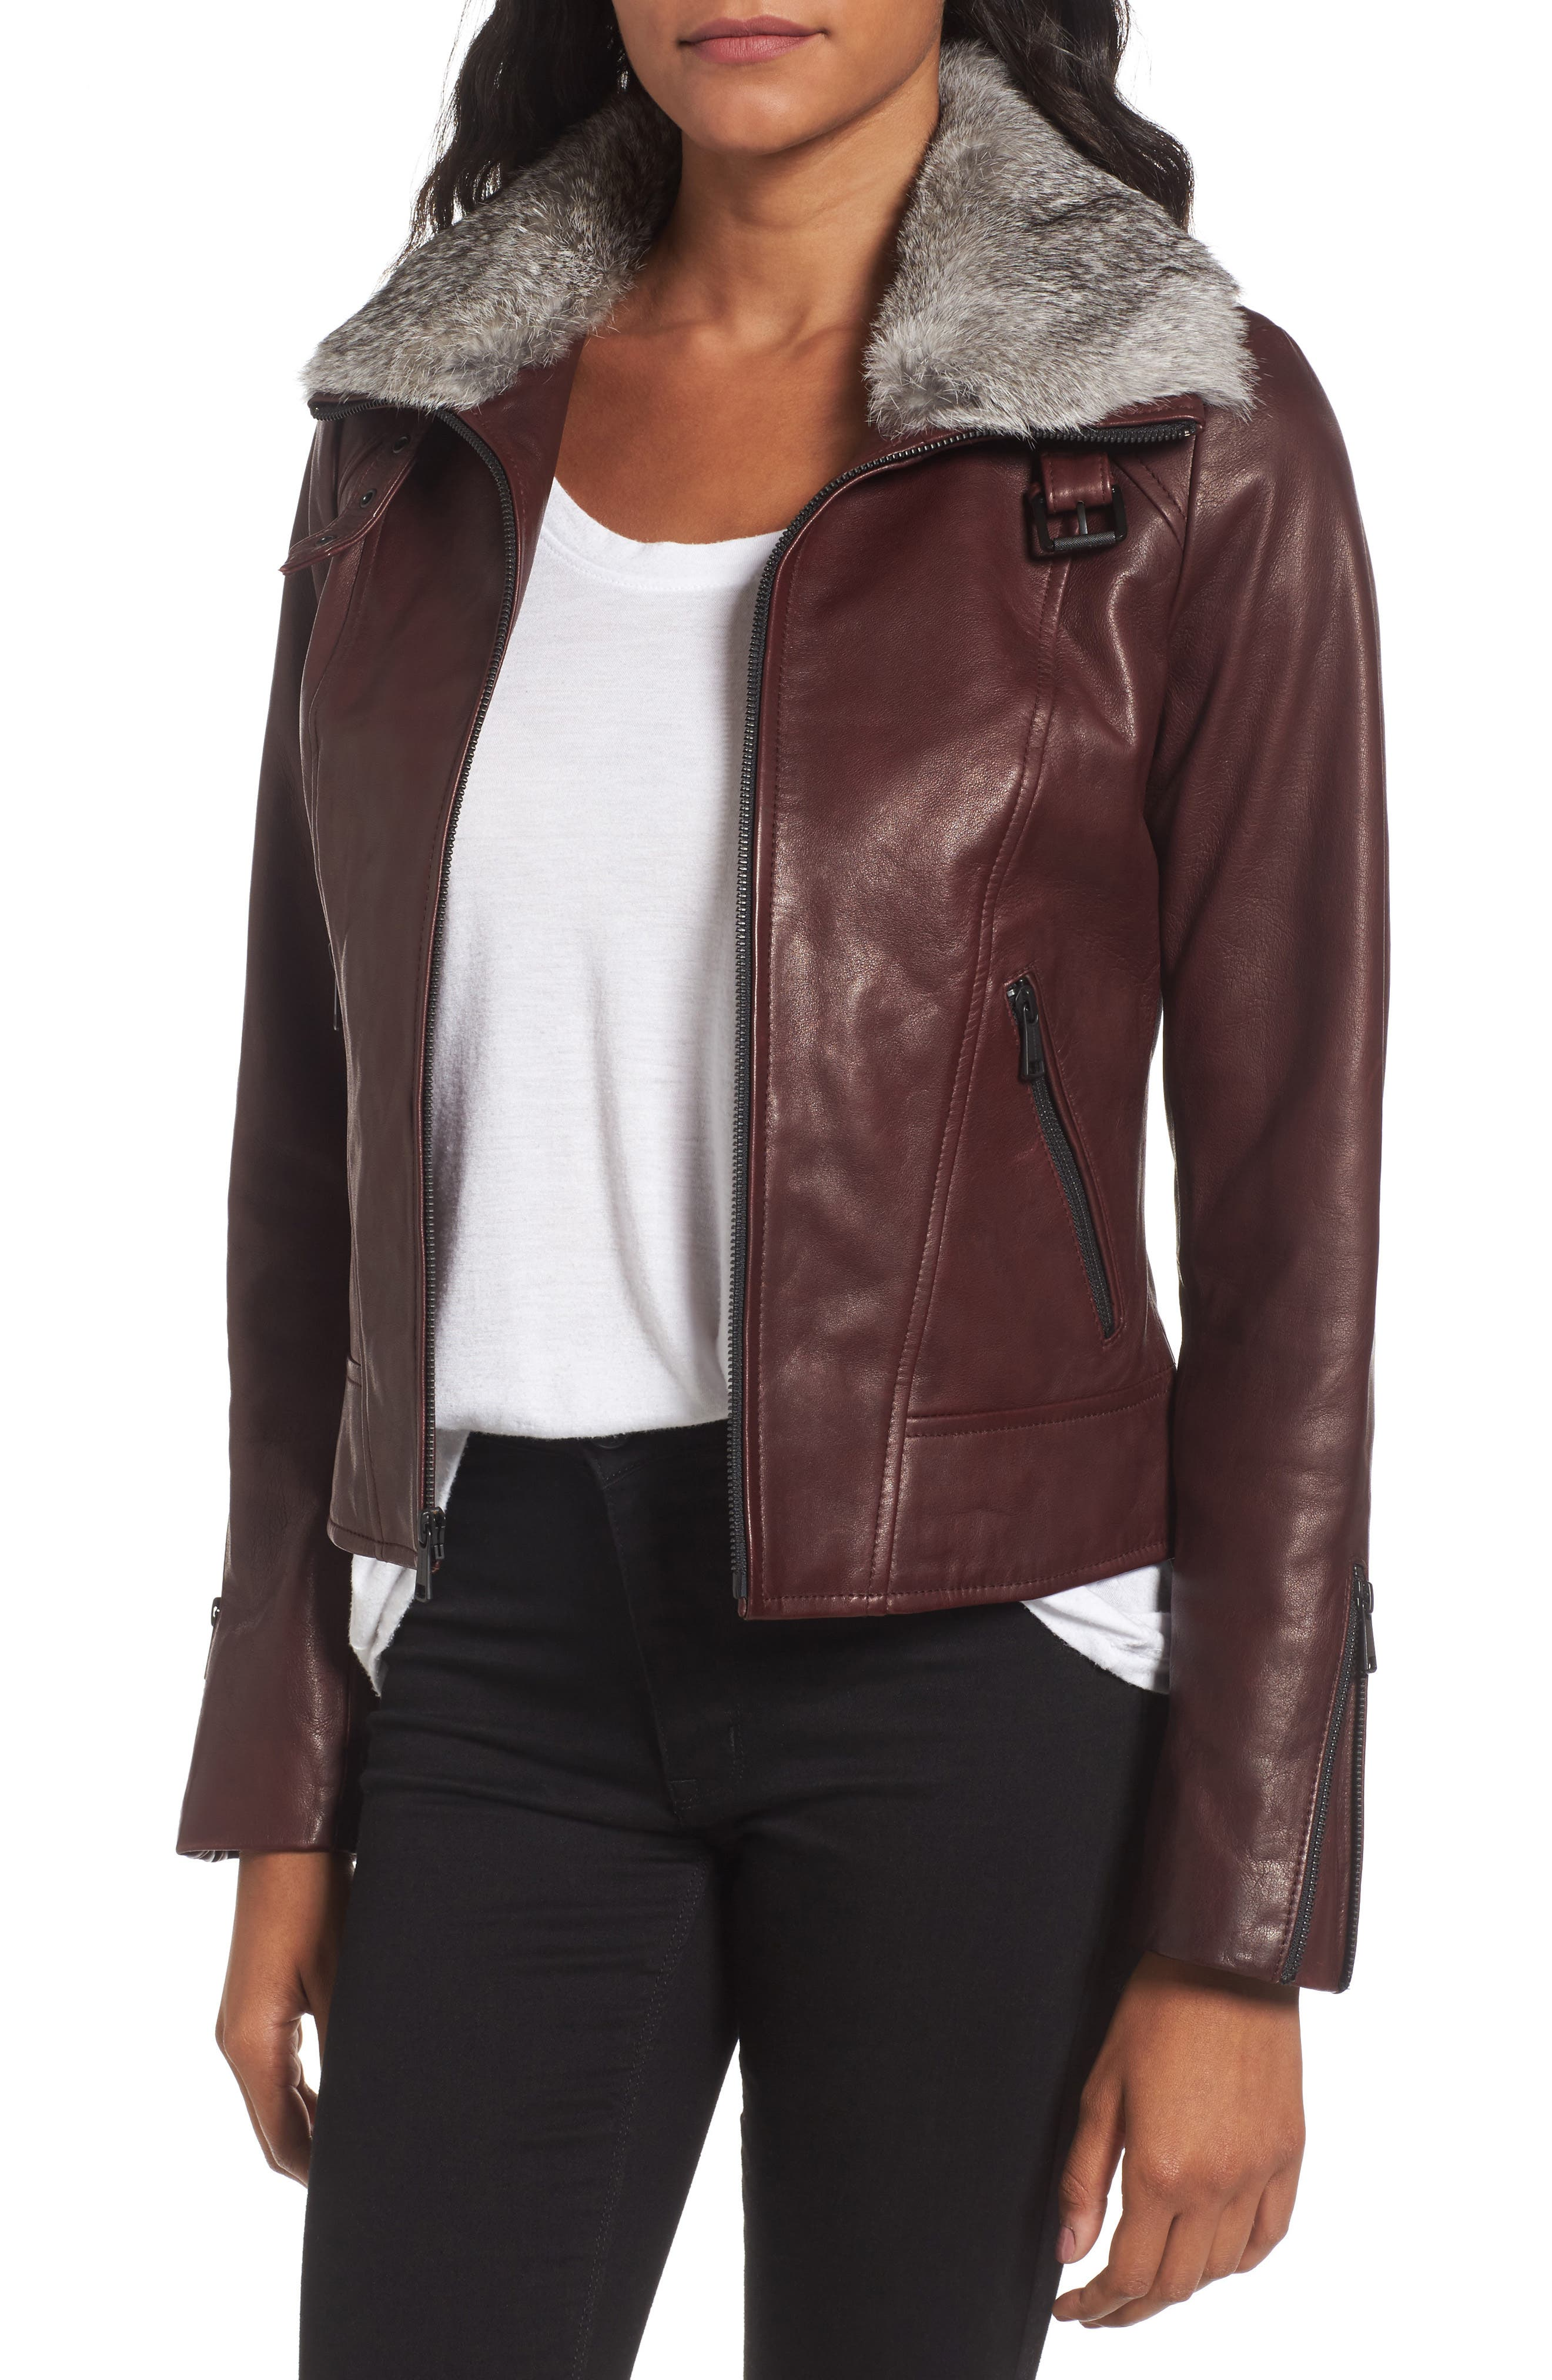 Cambridge Genuine Rabbit Fur & Leather Jacket,                             Main thumbnail 1, color,                             Burgundy